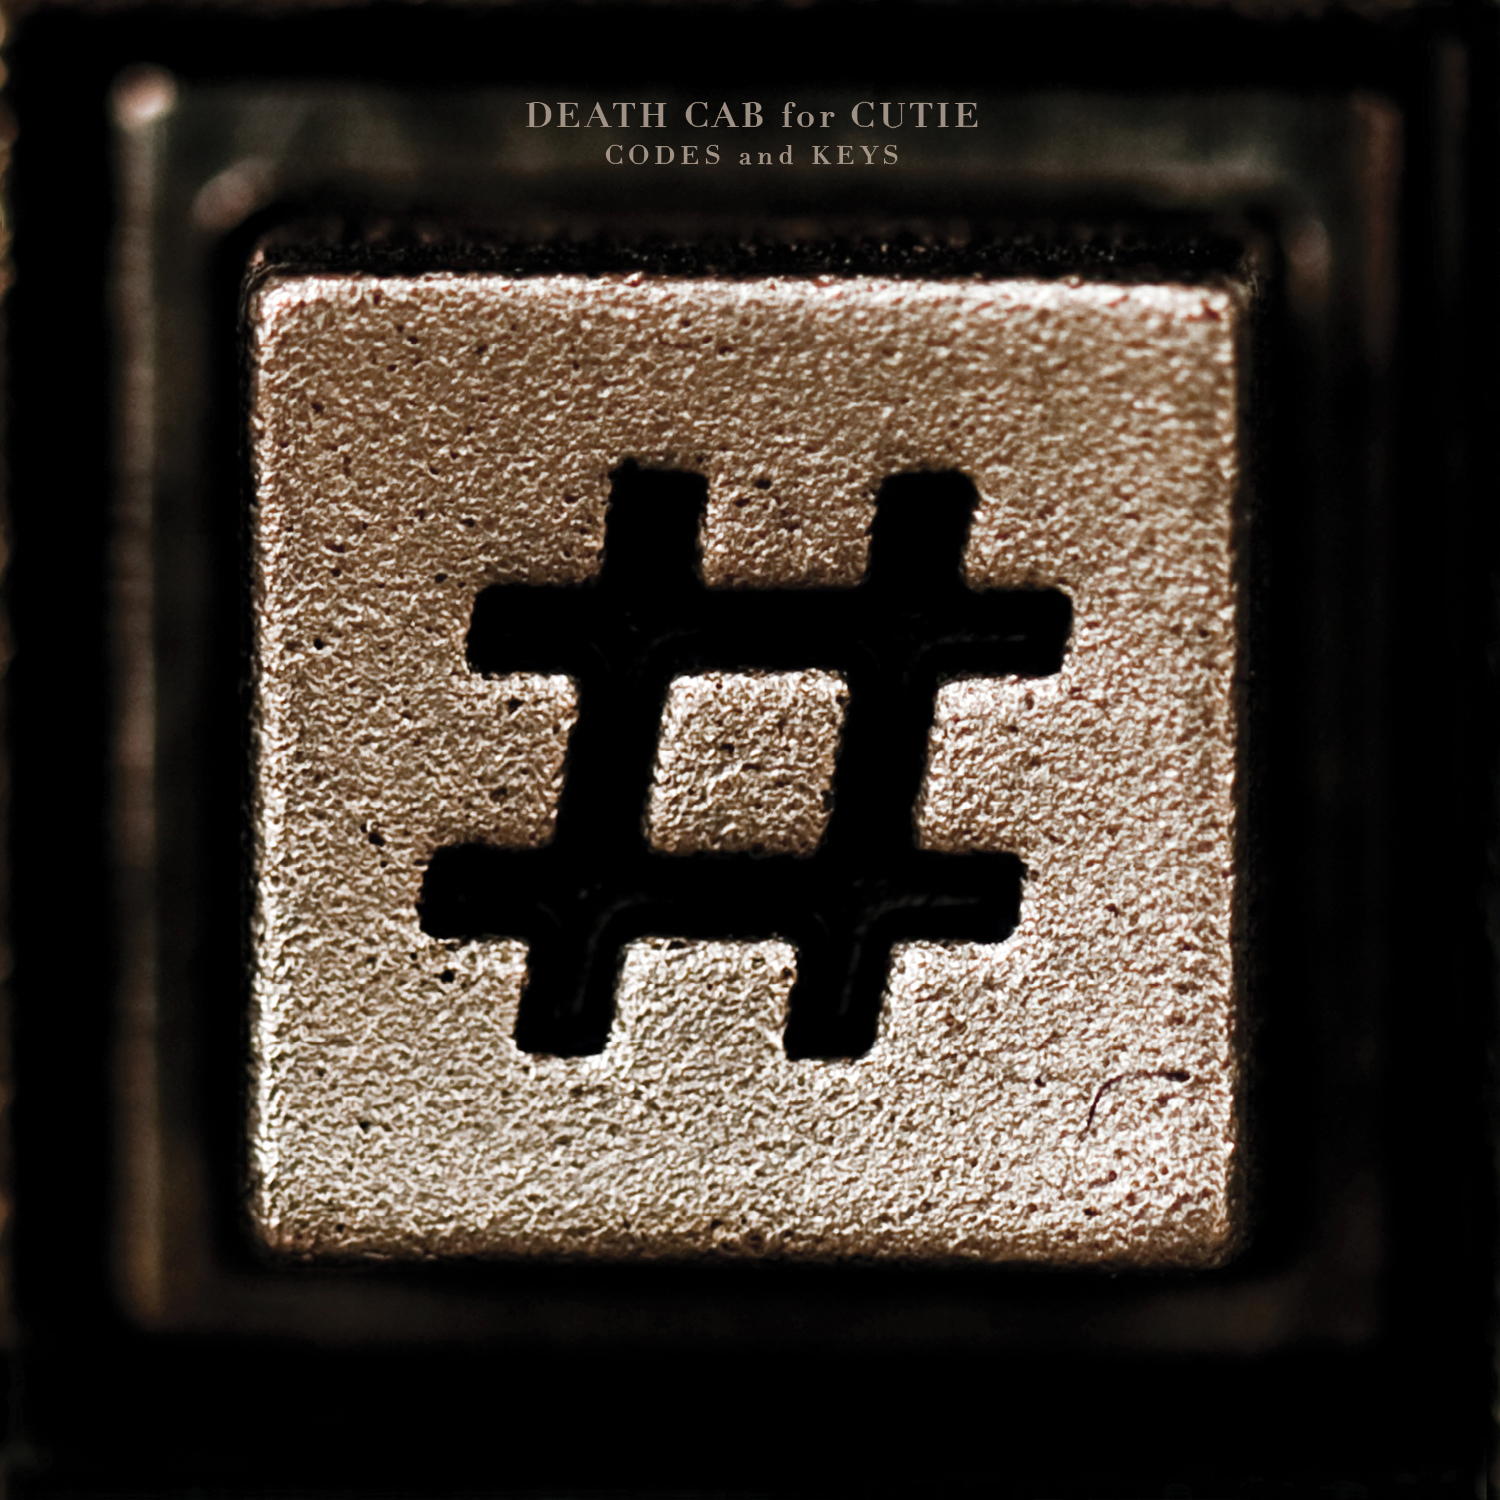 Death Cab for Cutie, Codes and Keys